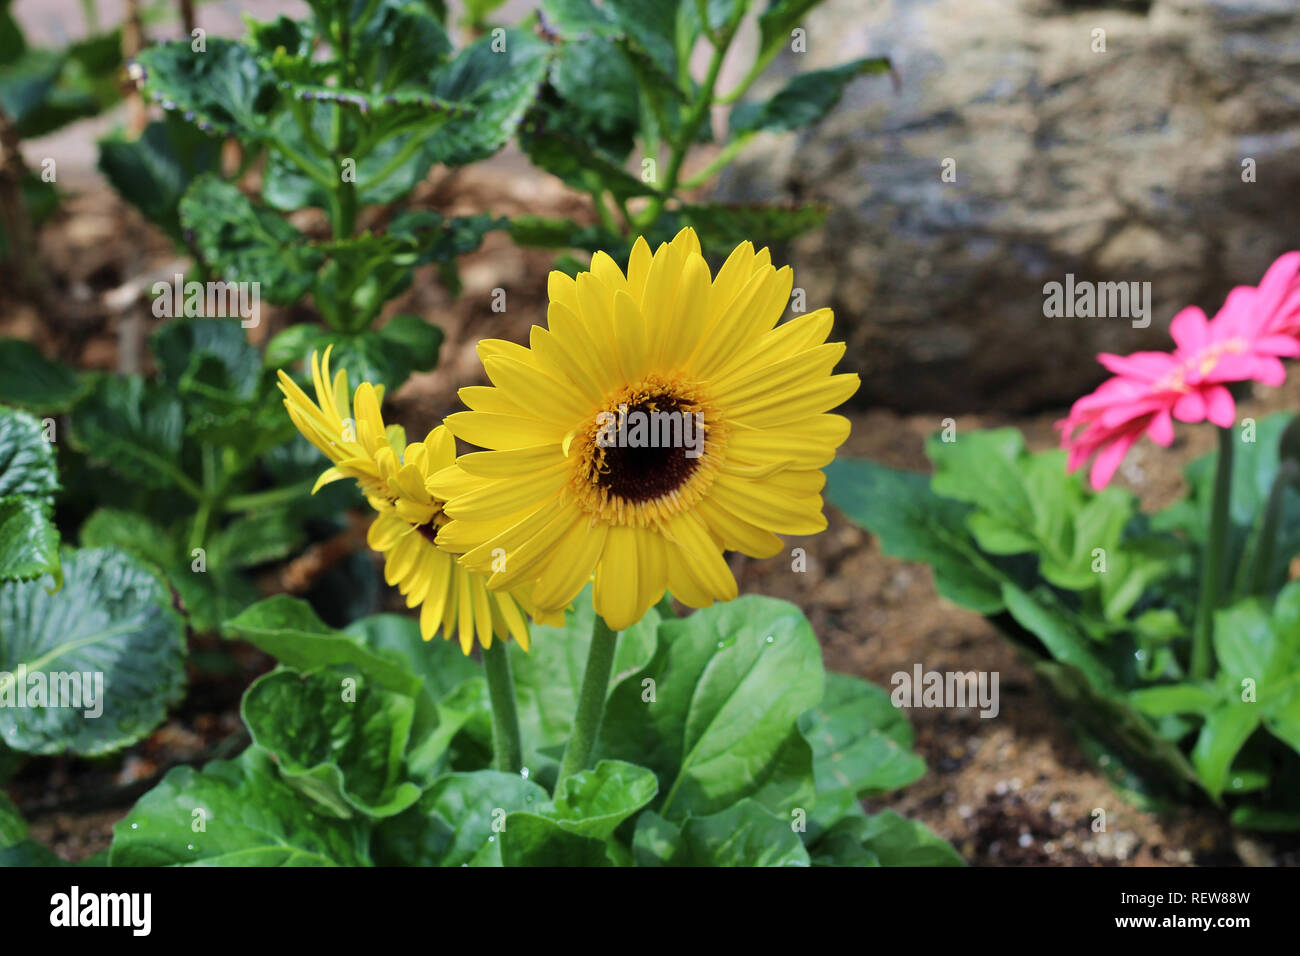 Closeup of a yellow Gerbera Daisy, Transvaal Daisy, in full bloom in a rocky garden in the spring - Stock Image